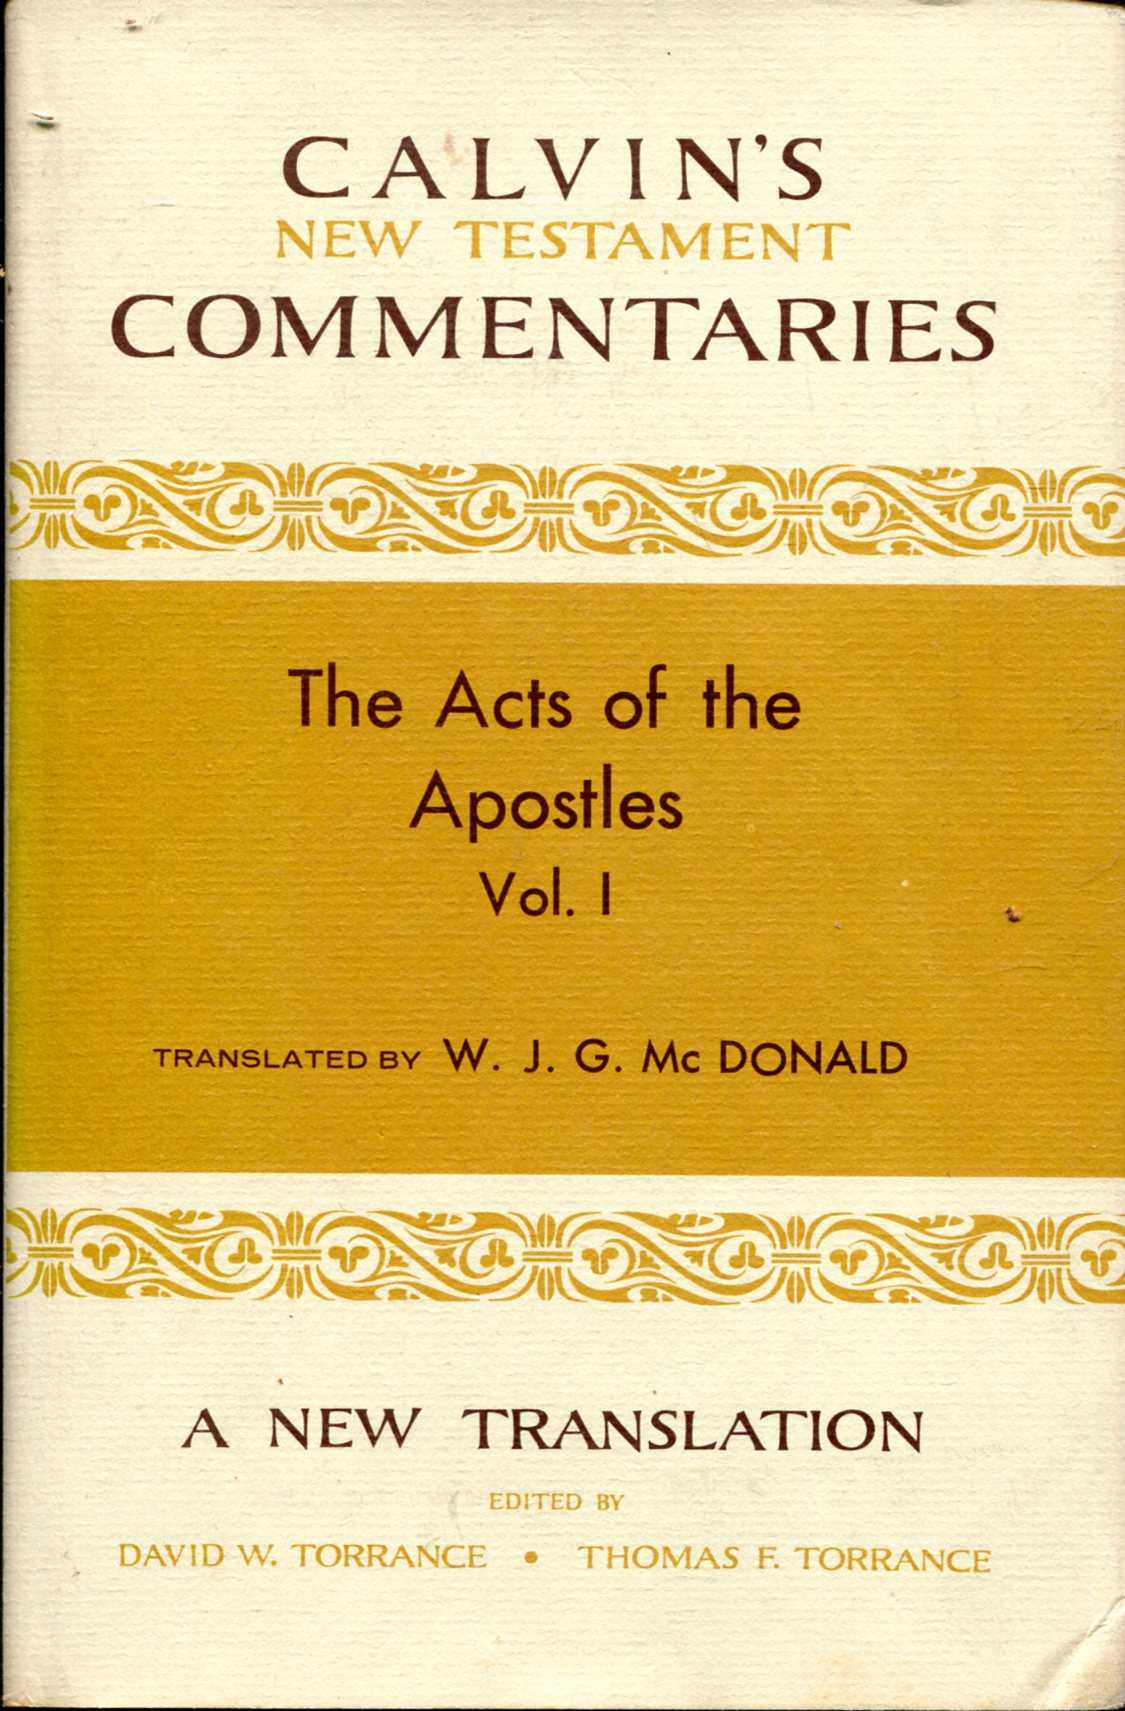 Image for The Acts of the Apostles volume I 1-13 (Calvin's New Testament Commentaries)